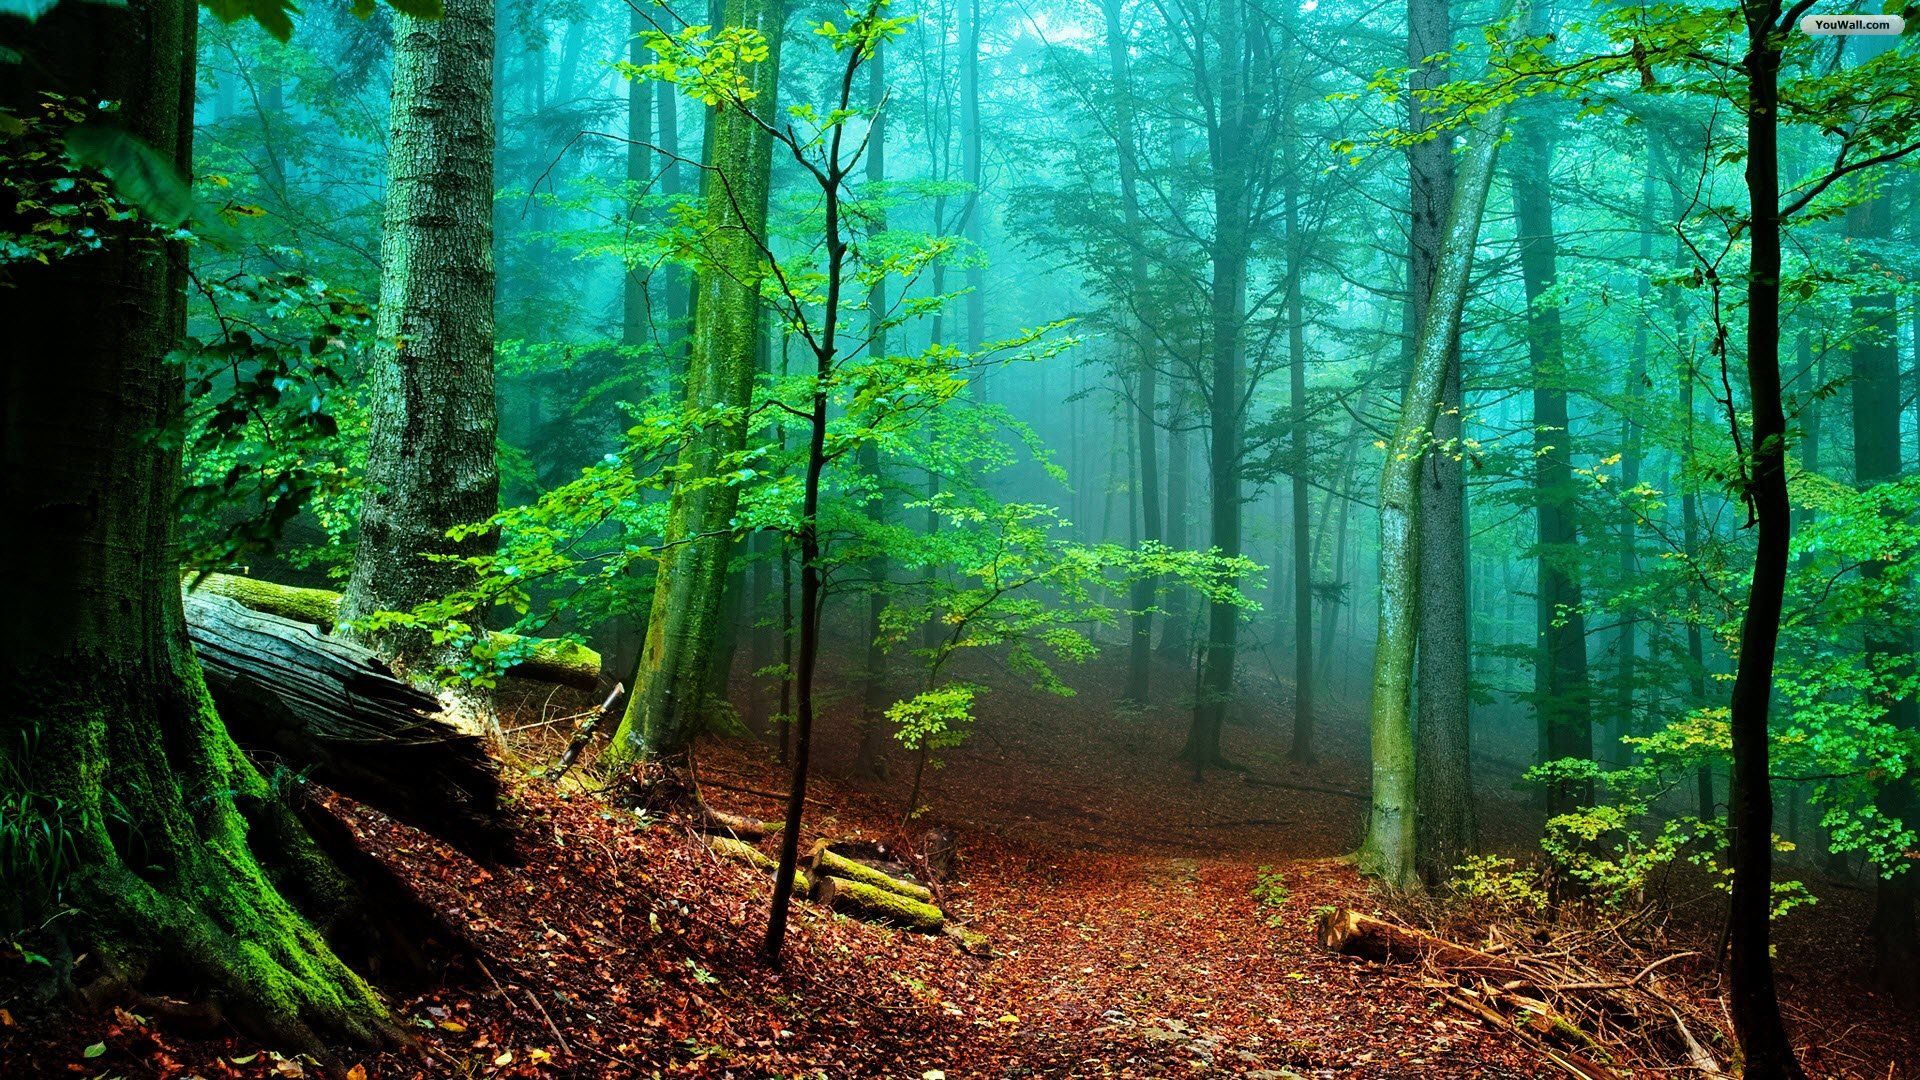 NatureWallpaperHD_nature-forest-hd-wallpapers-02